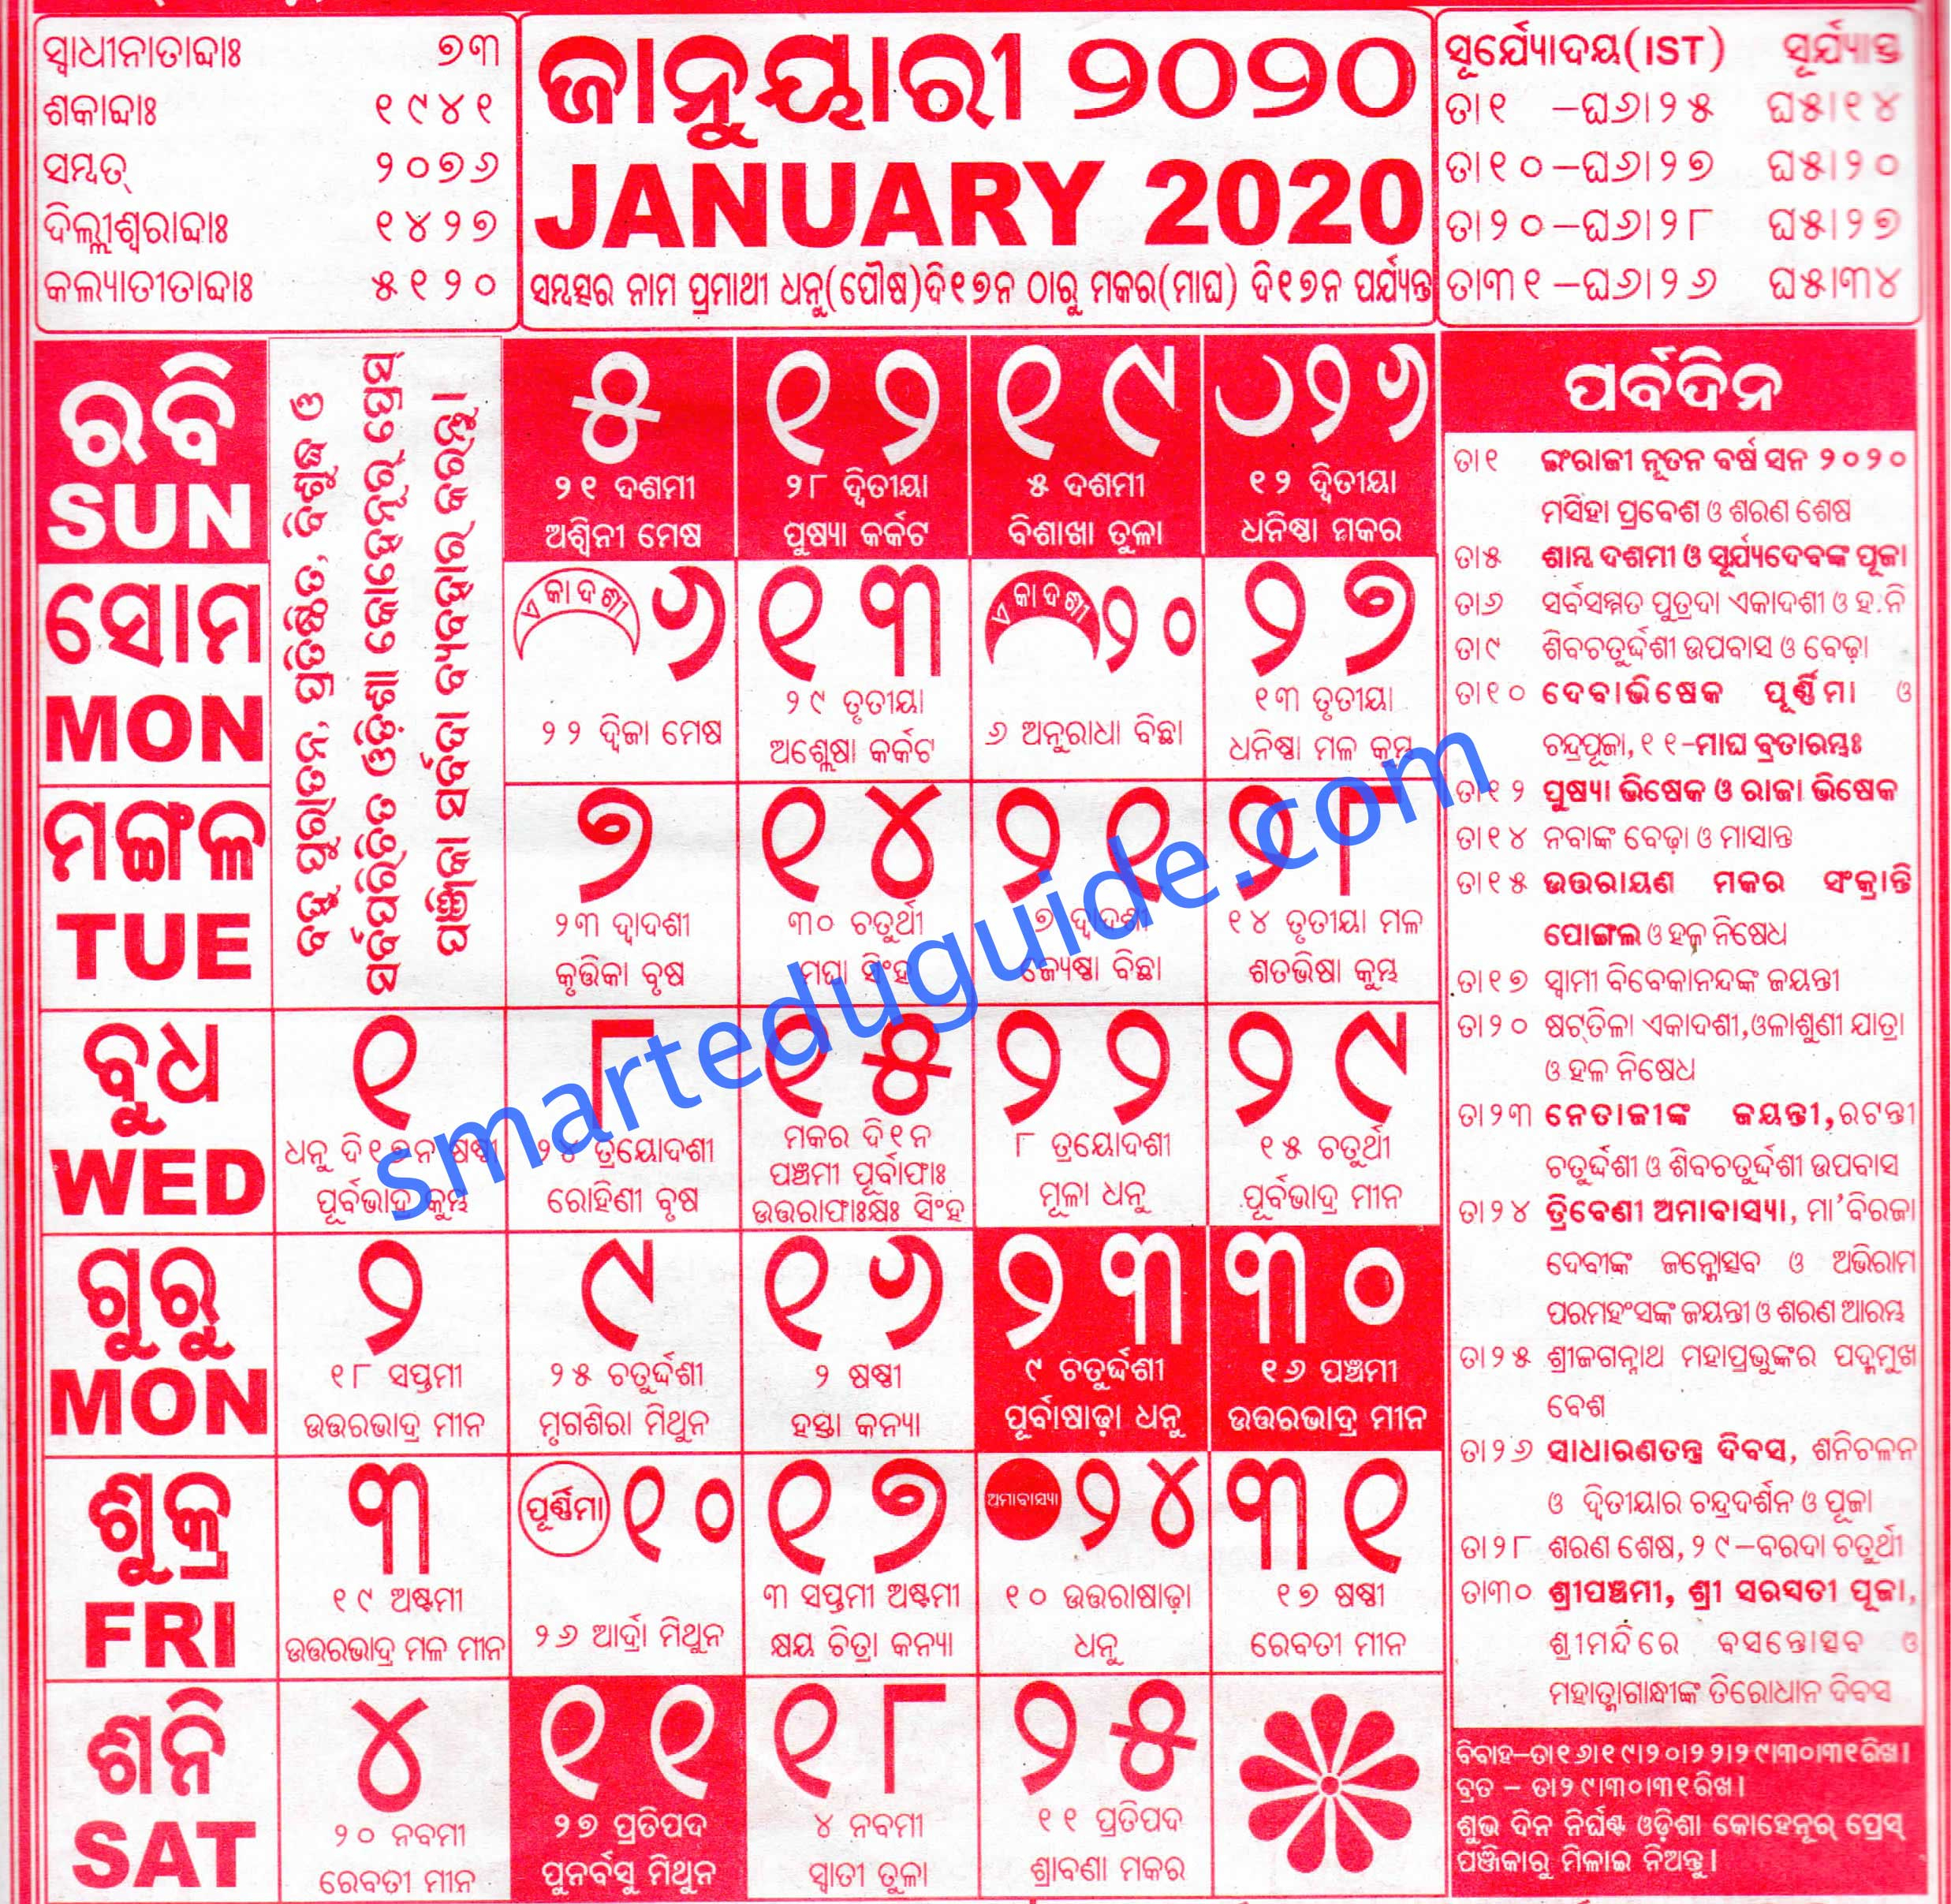 Odia Calendar 2020 Kohinoor Pdf | Seg with regard to Oriya Calendar 2020 February